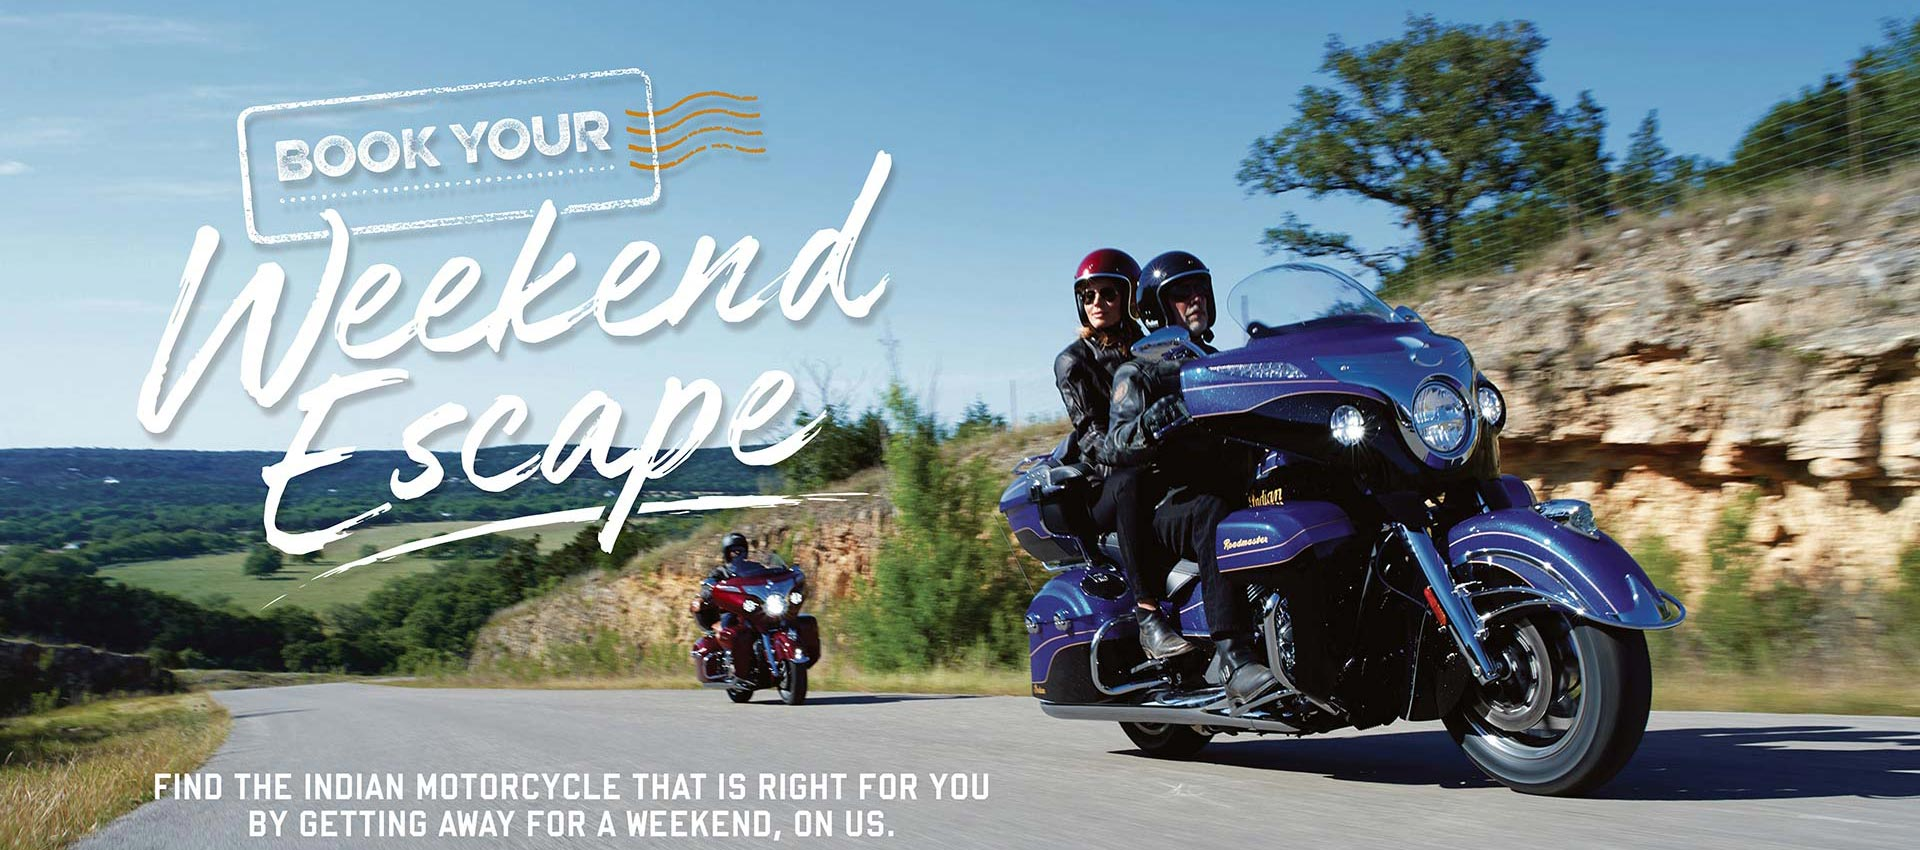 Indian Motorcycle weekend escape